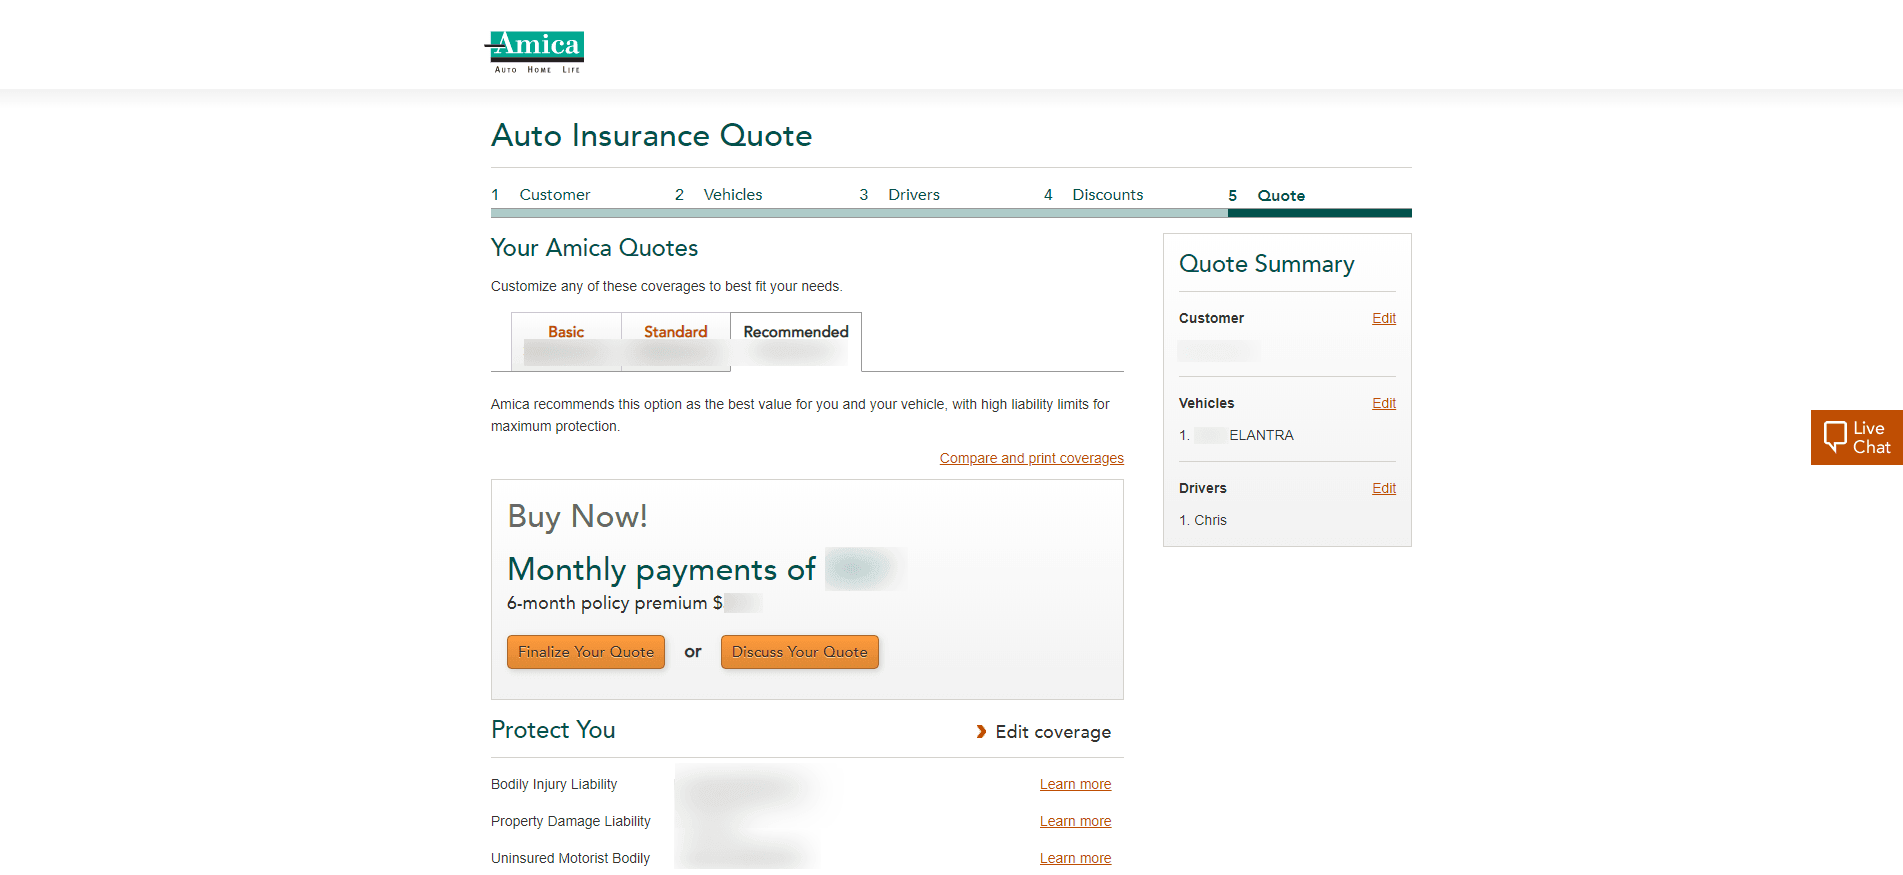 Amica Insurance Review - Quote